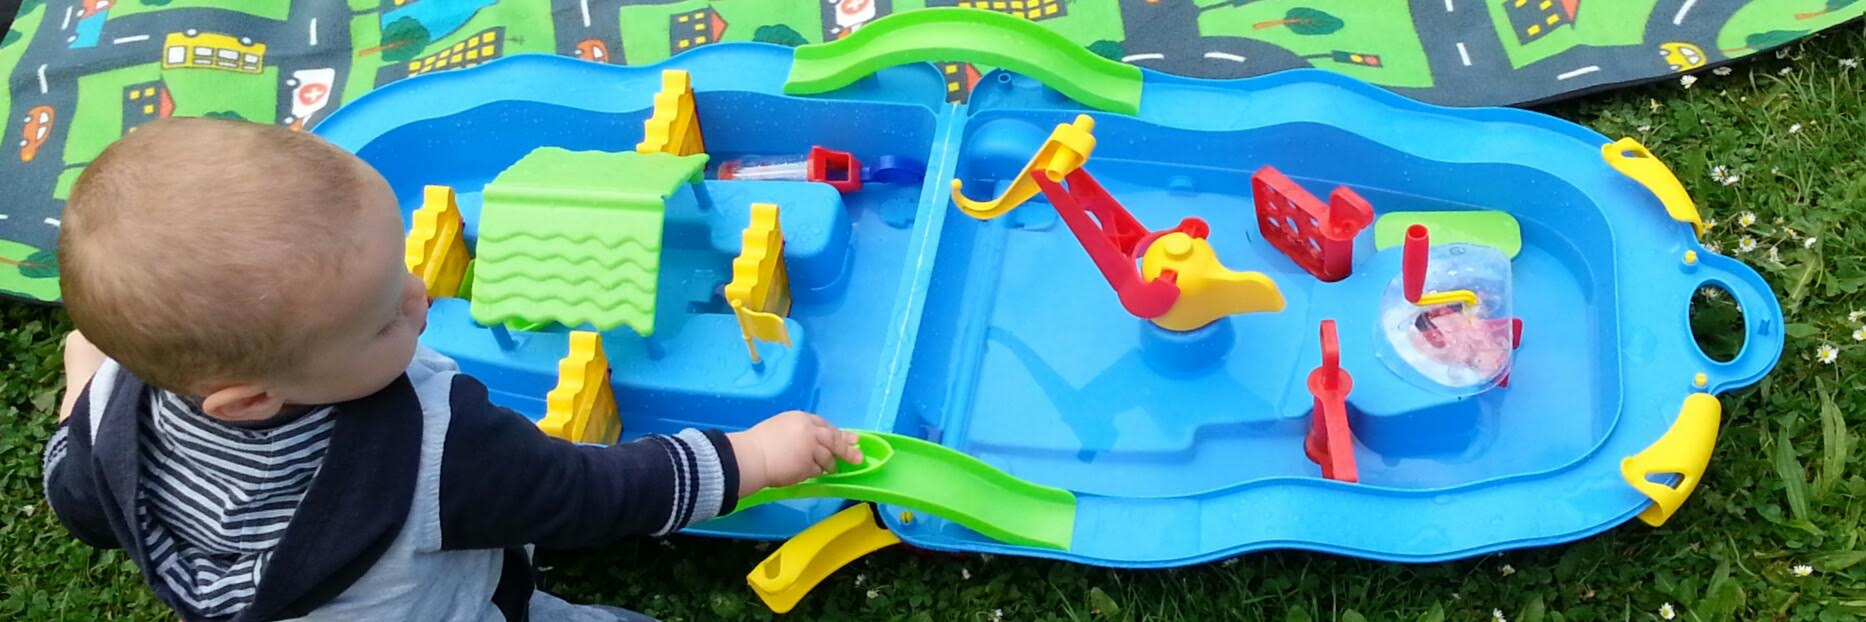 Water fun troley Buddy toys